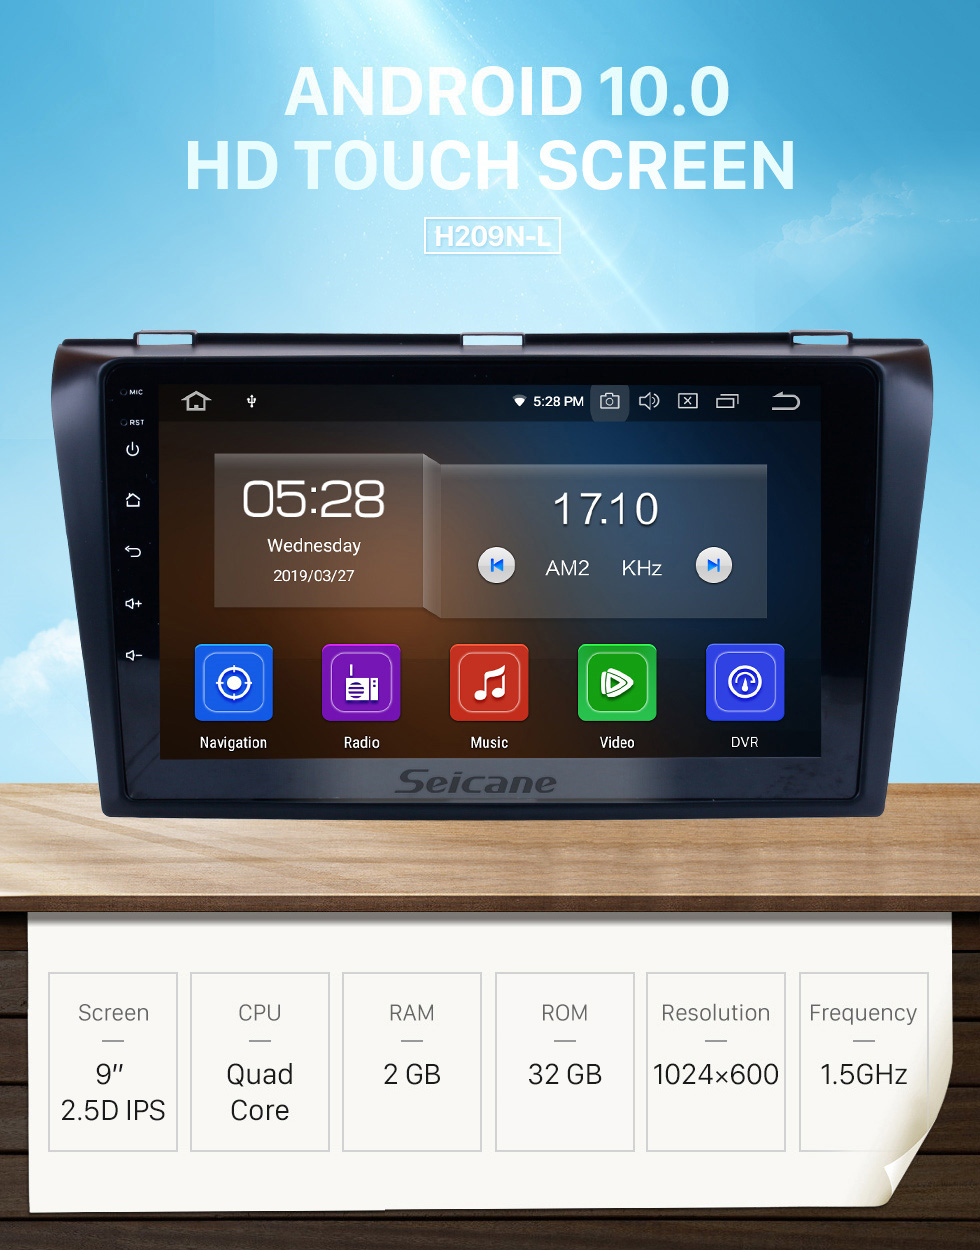 Seicane All-in-one Android 10.0 2004-2009 Mazda 3 Radio Upgrade with in Dash GPS Navigation System 1024*600 Multi-touch Capacitive Screen Bluetooth Music Mirror Link OBD2 3G WiFi HD 1080P DVR USB Backup Camera